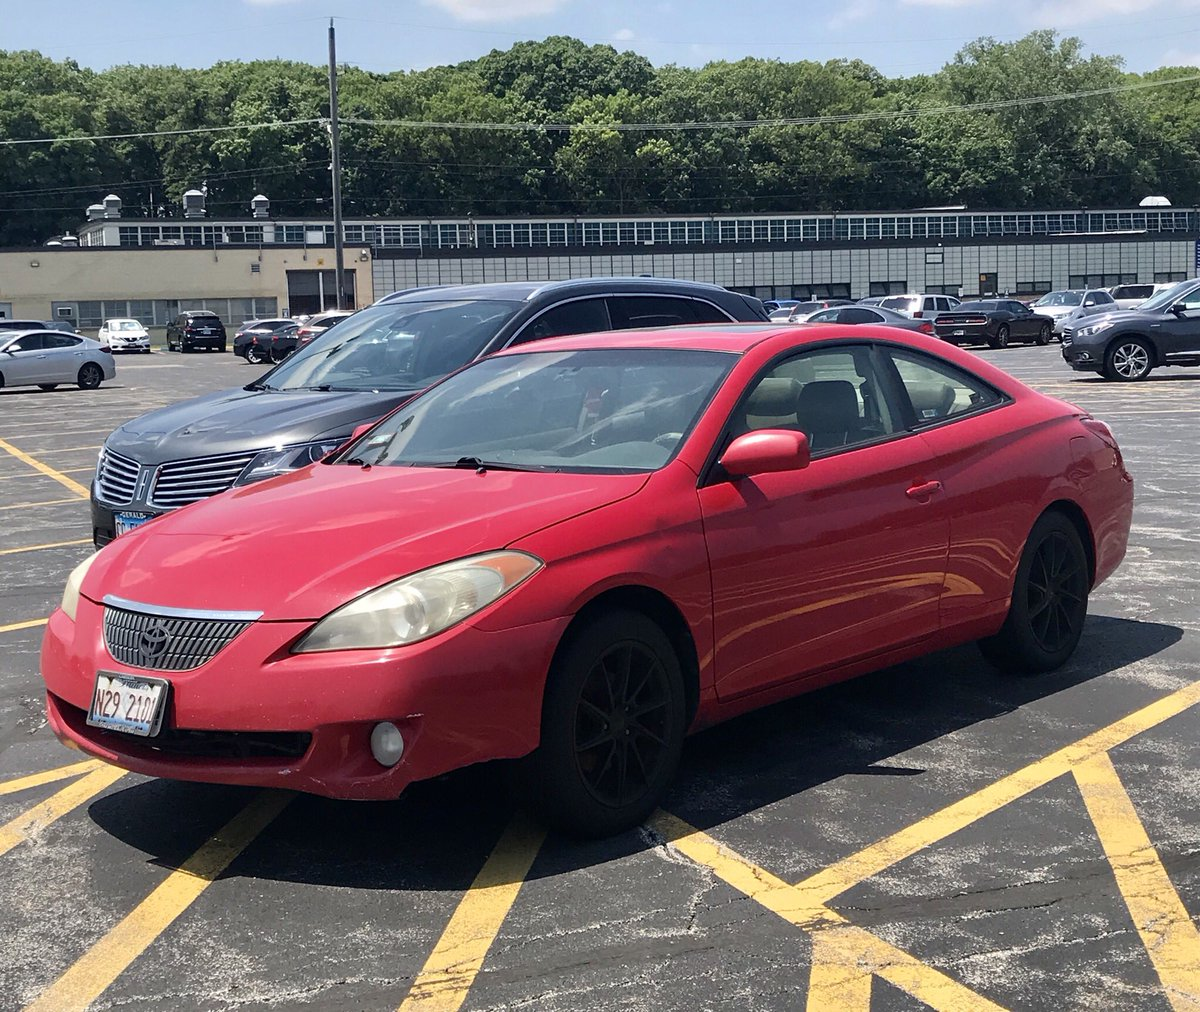 Lunch Run: Red 2-Door Edition #CarSpotter #Solara #Blazer pic.twitter.com/1YVqJLSIPh